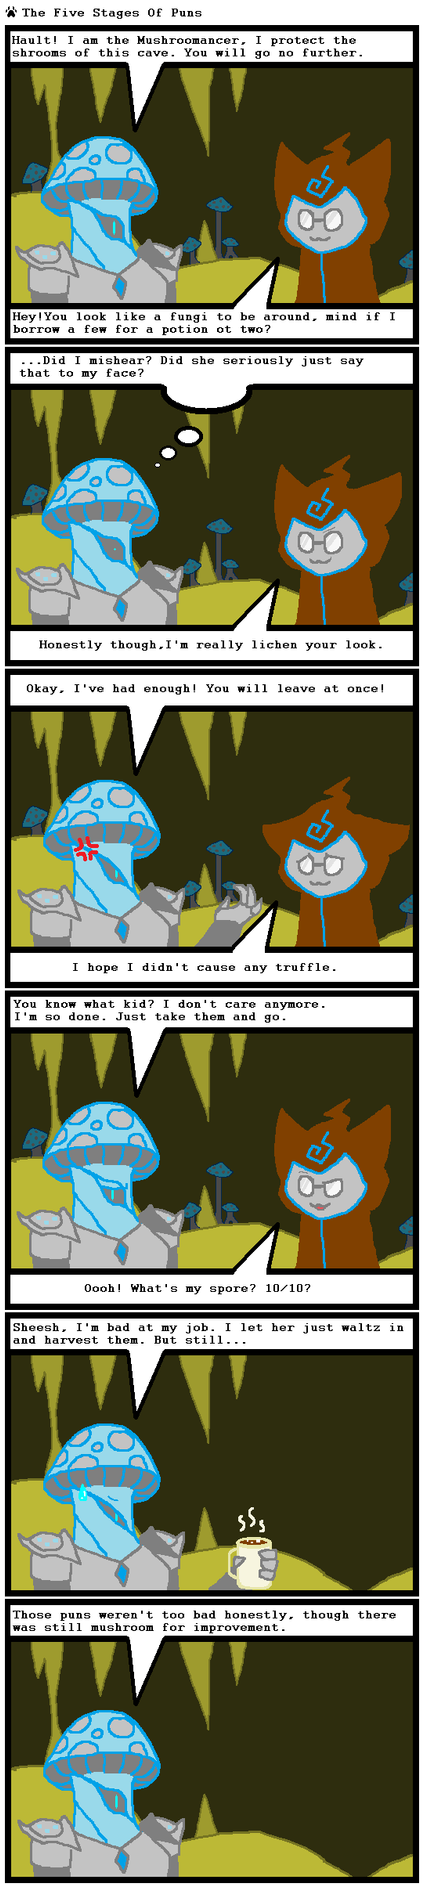 The Five Stages of Puns by Mythril-Jelly